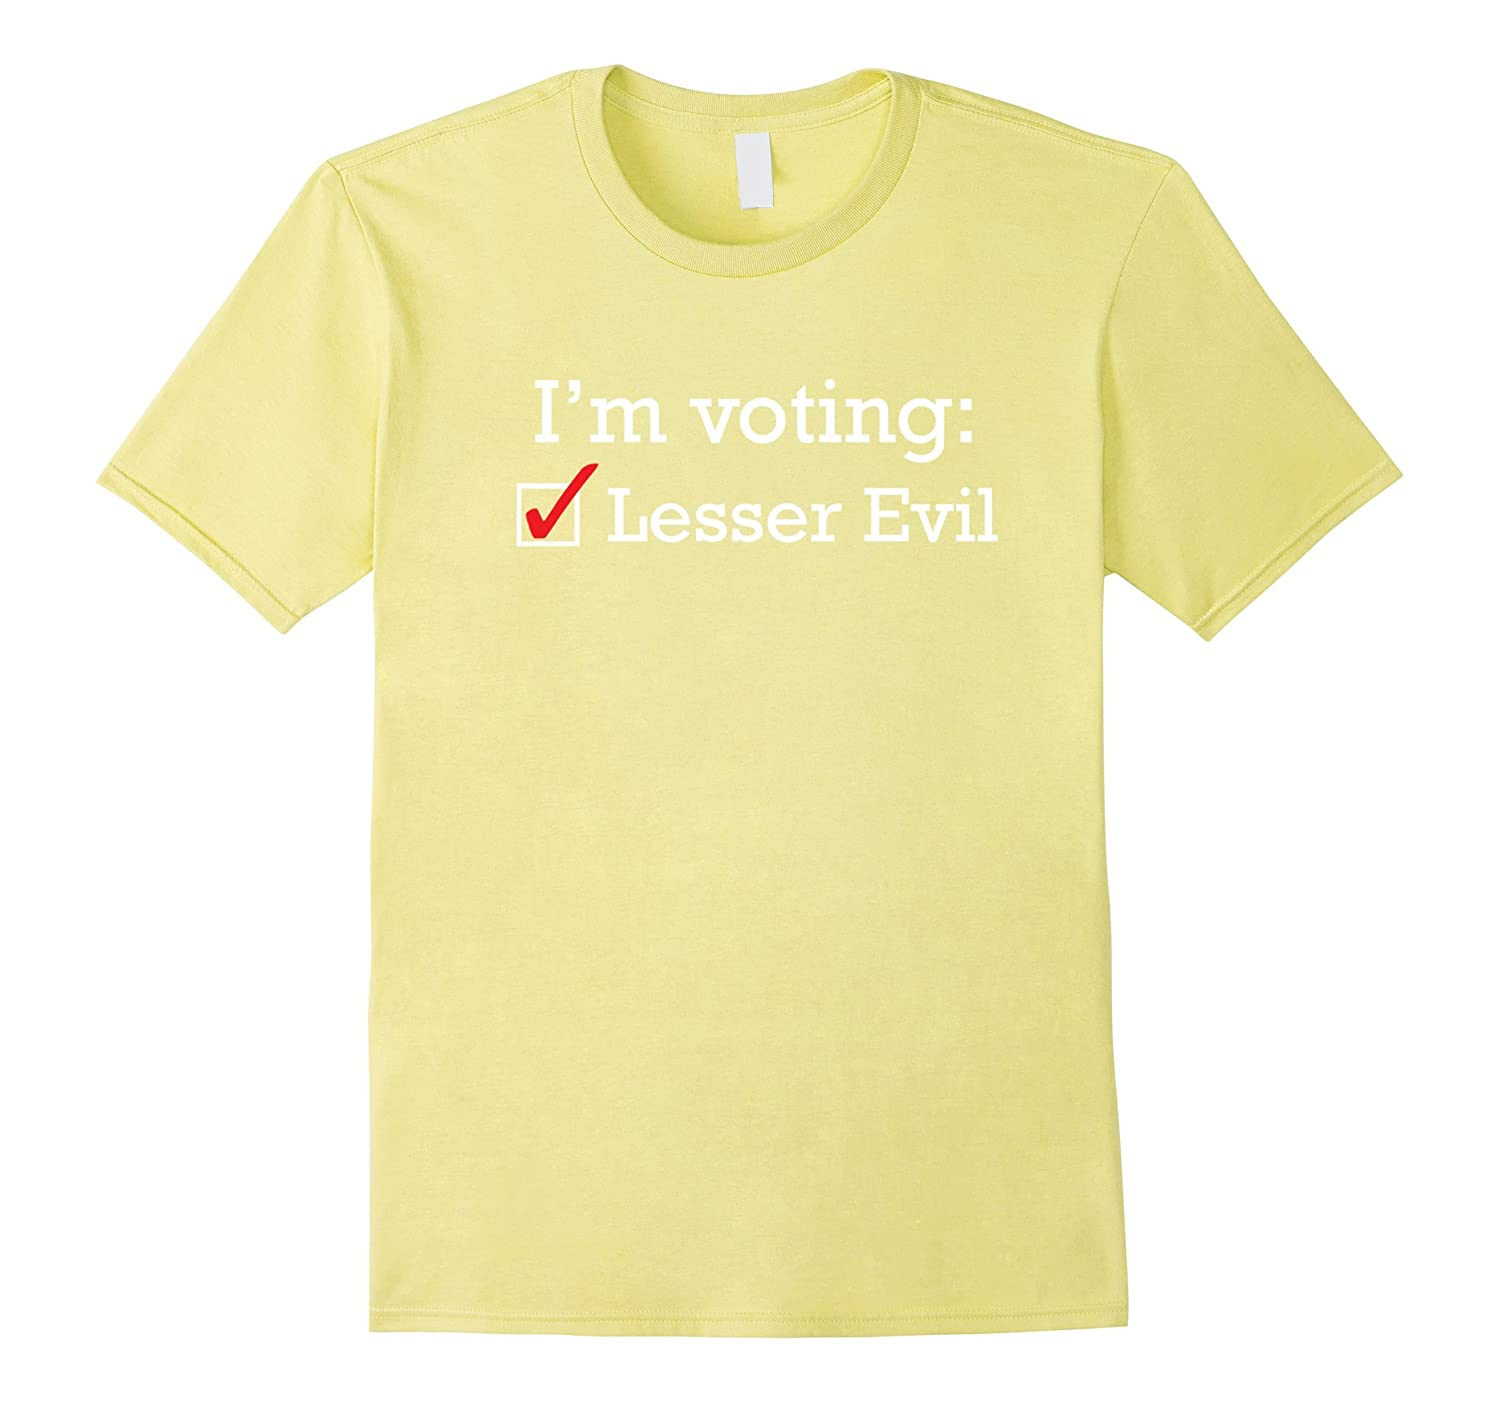 #1 Voting for Lesser Evil shirt for unhappy voters-BN